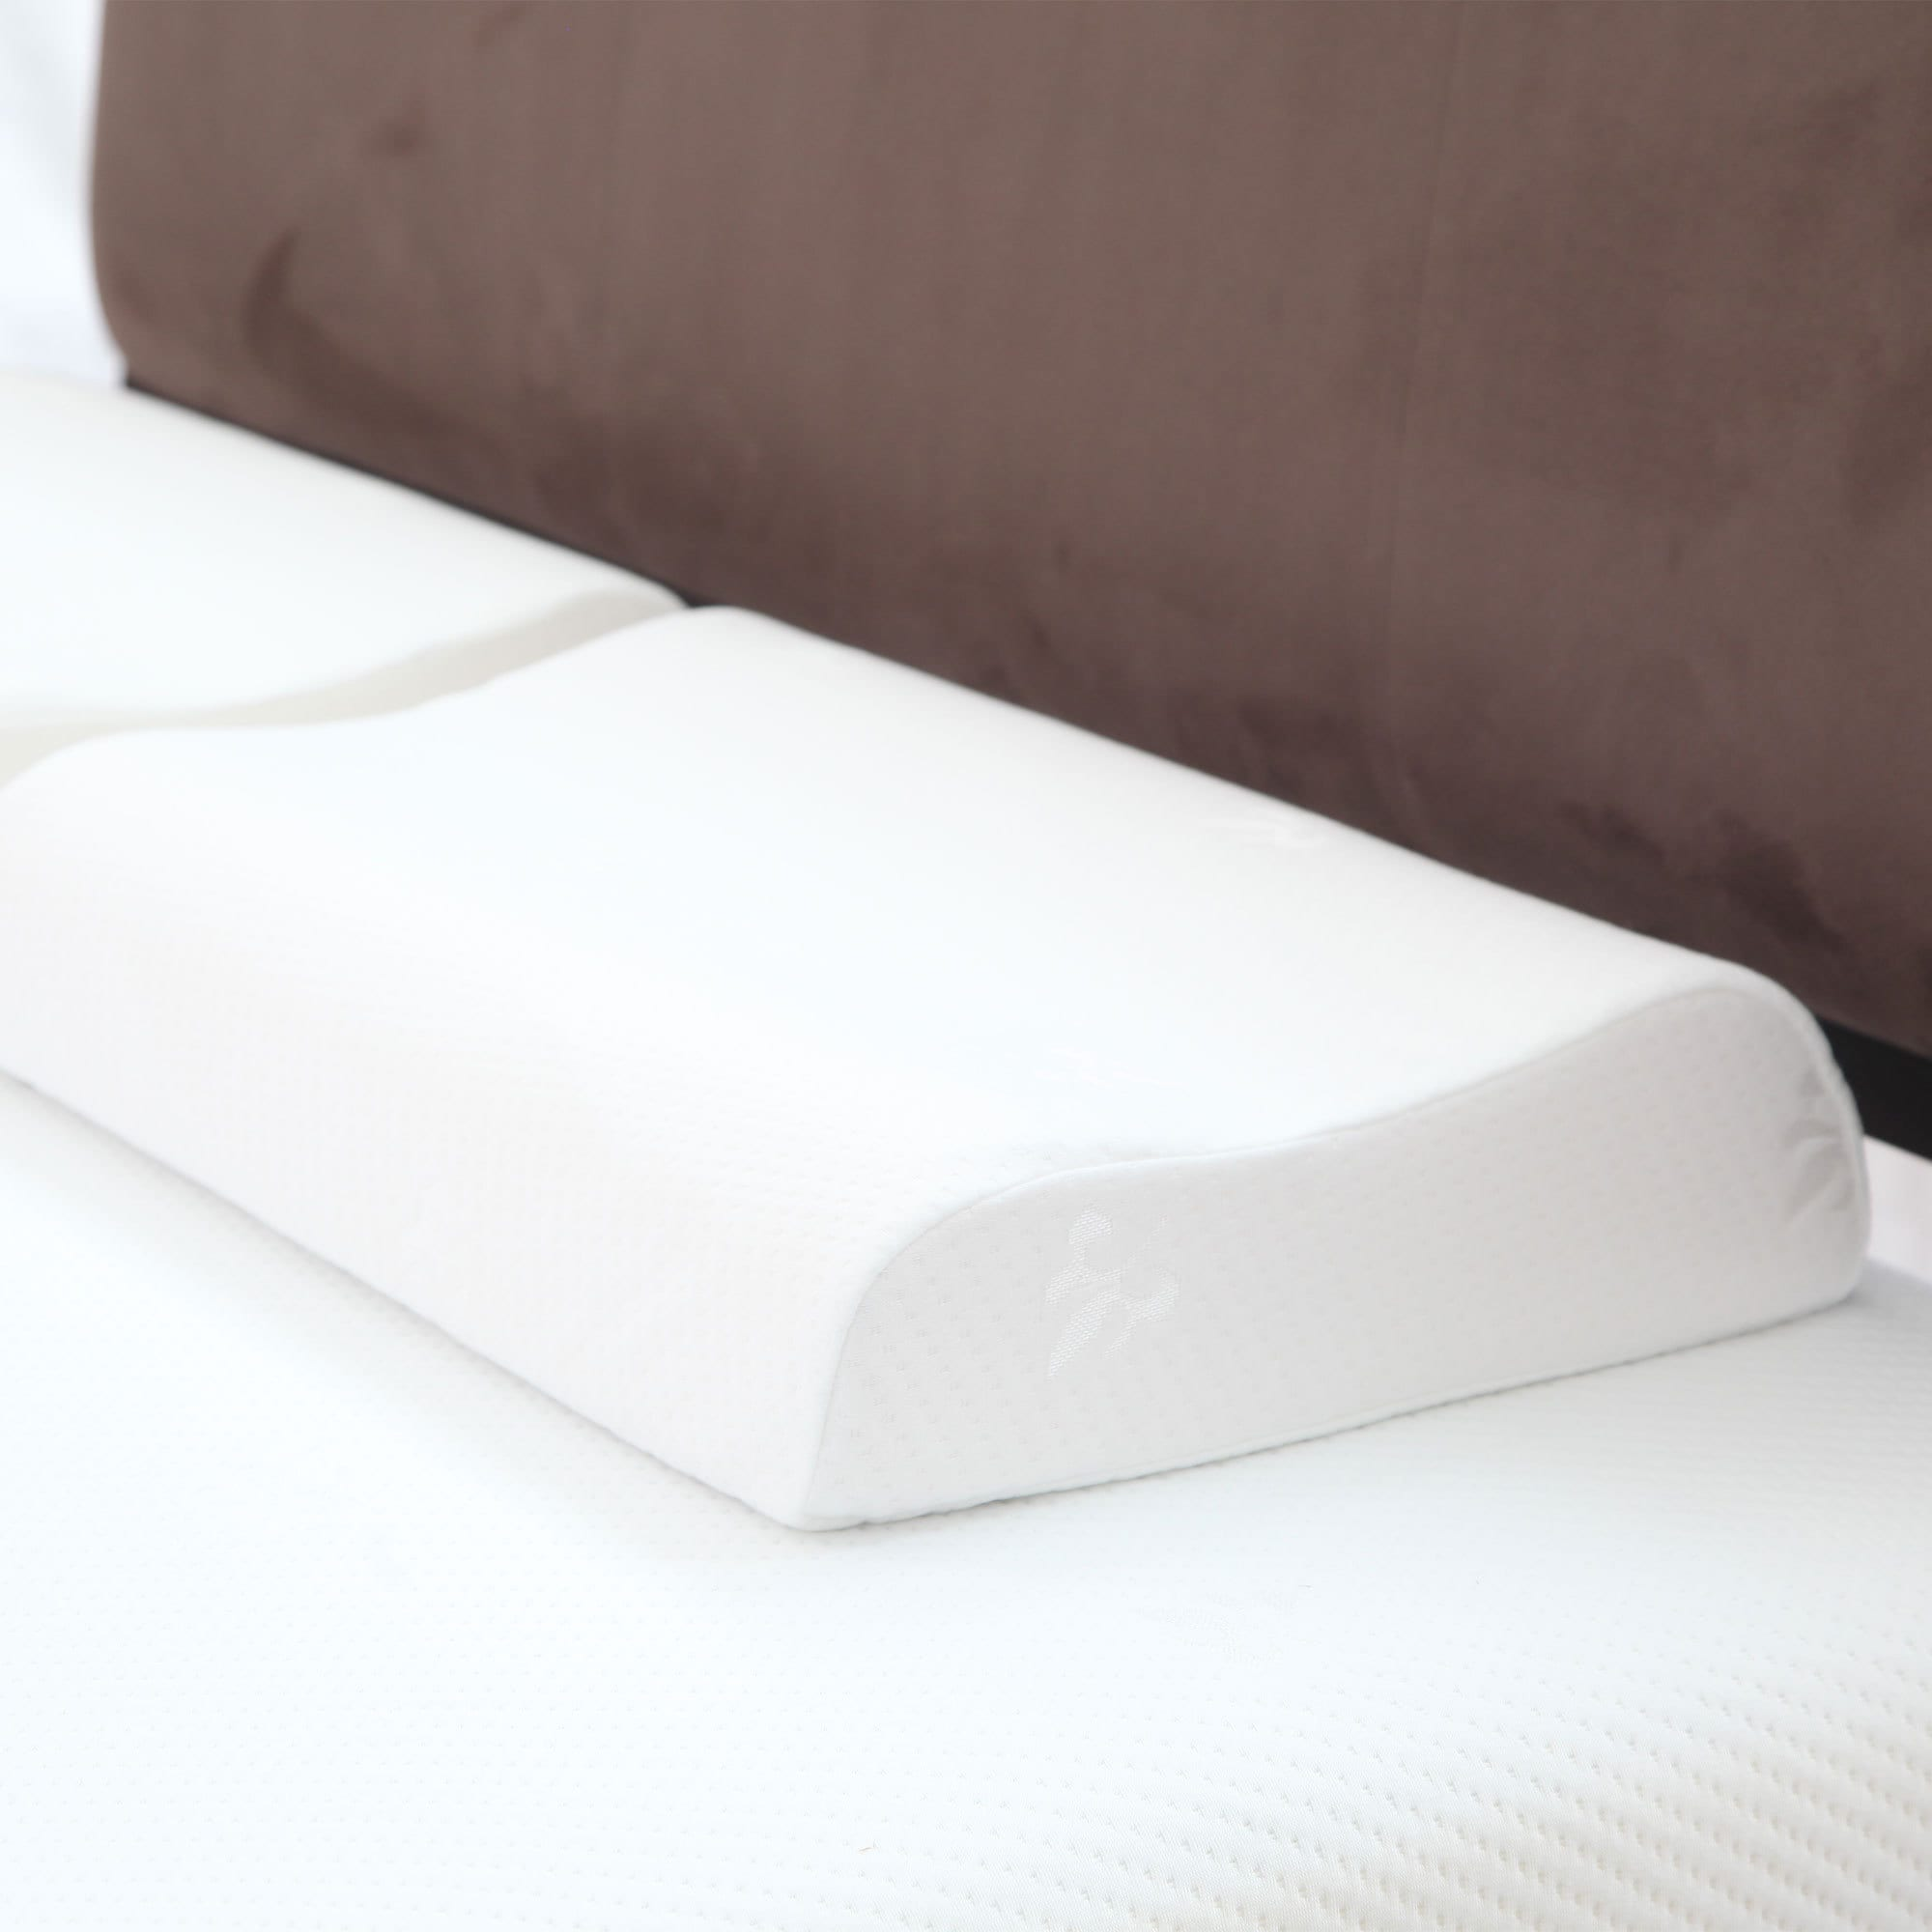 Trademark Windsor Home Contour Memory Foam Pillow with Re...